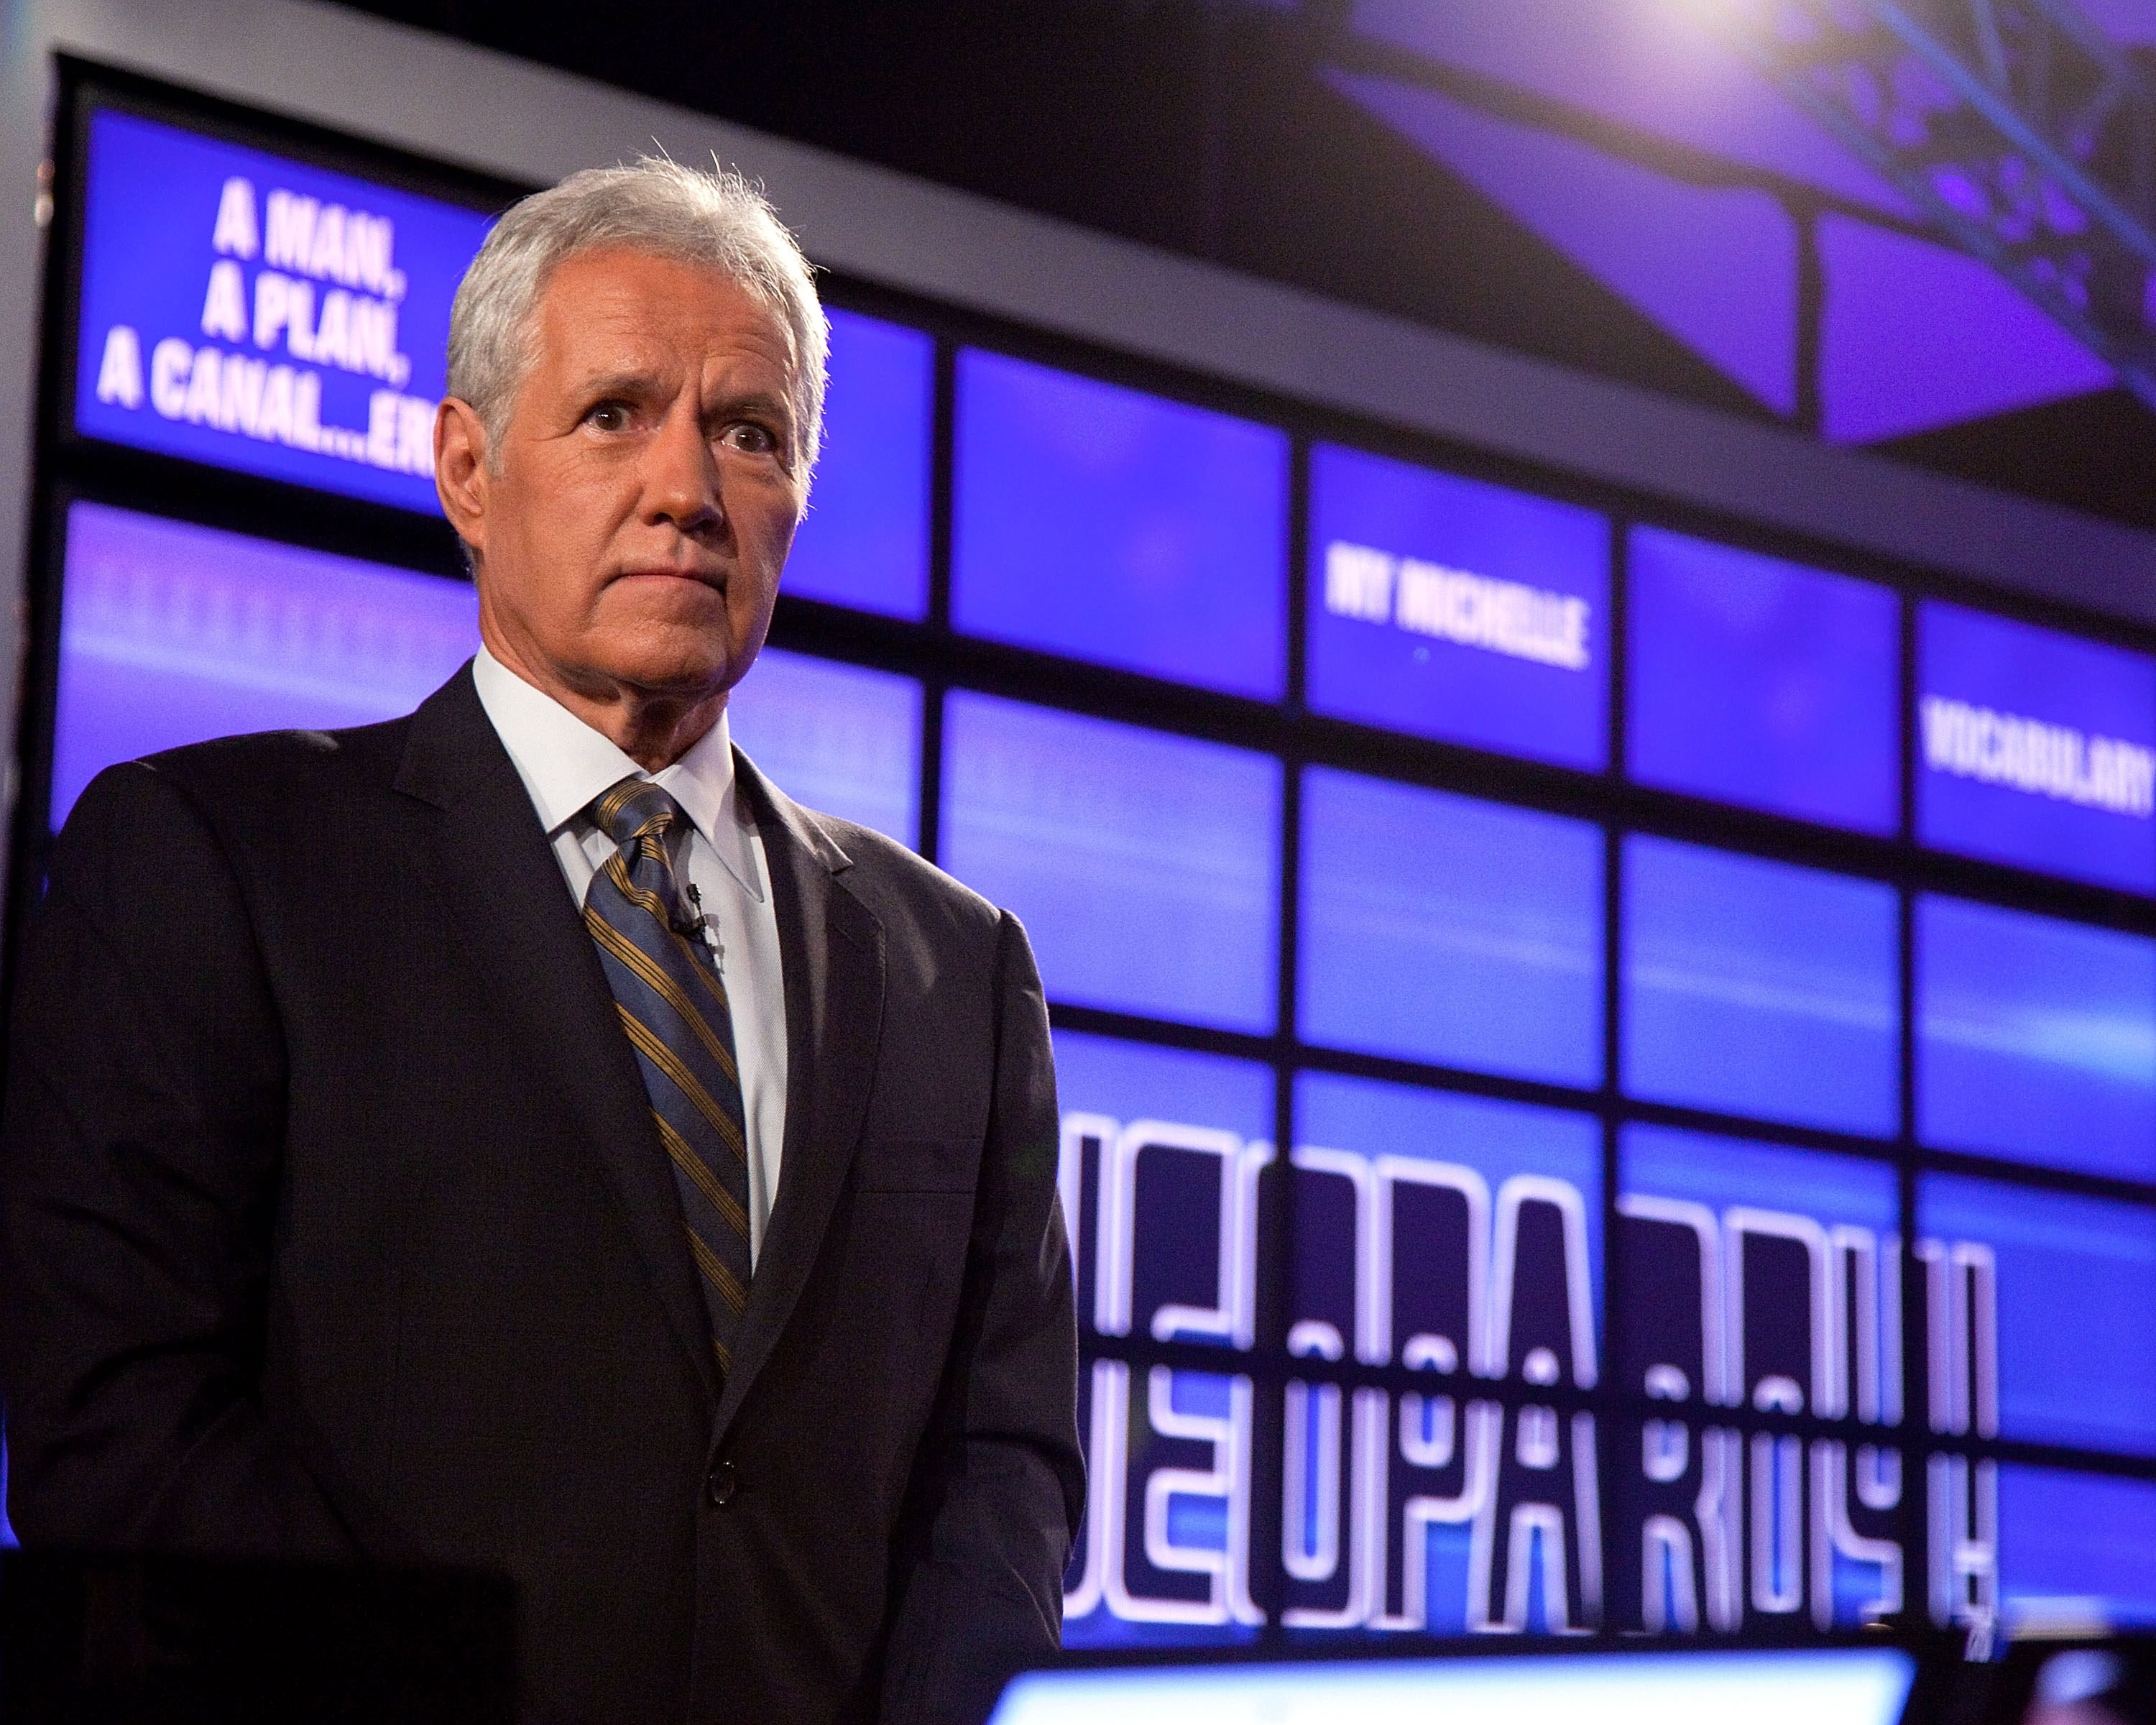 Jeopardy!  host Alex Trebek attends a press conference on Jan. 13, 2011 in New York.